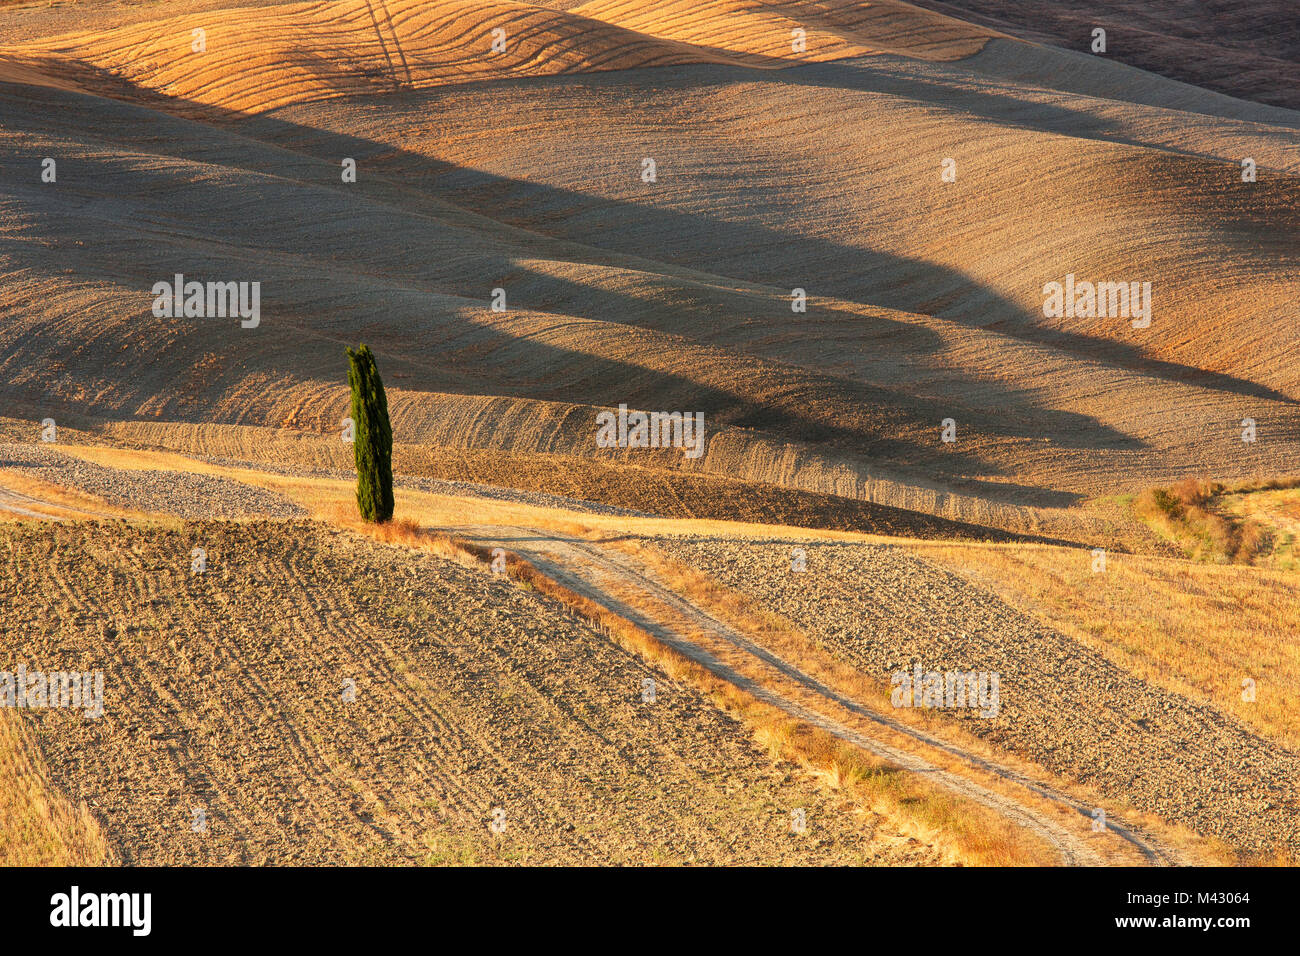 Europe,italy,Tuscany,Siena district,Orcia valley. Stock Photo